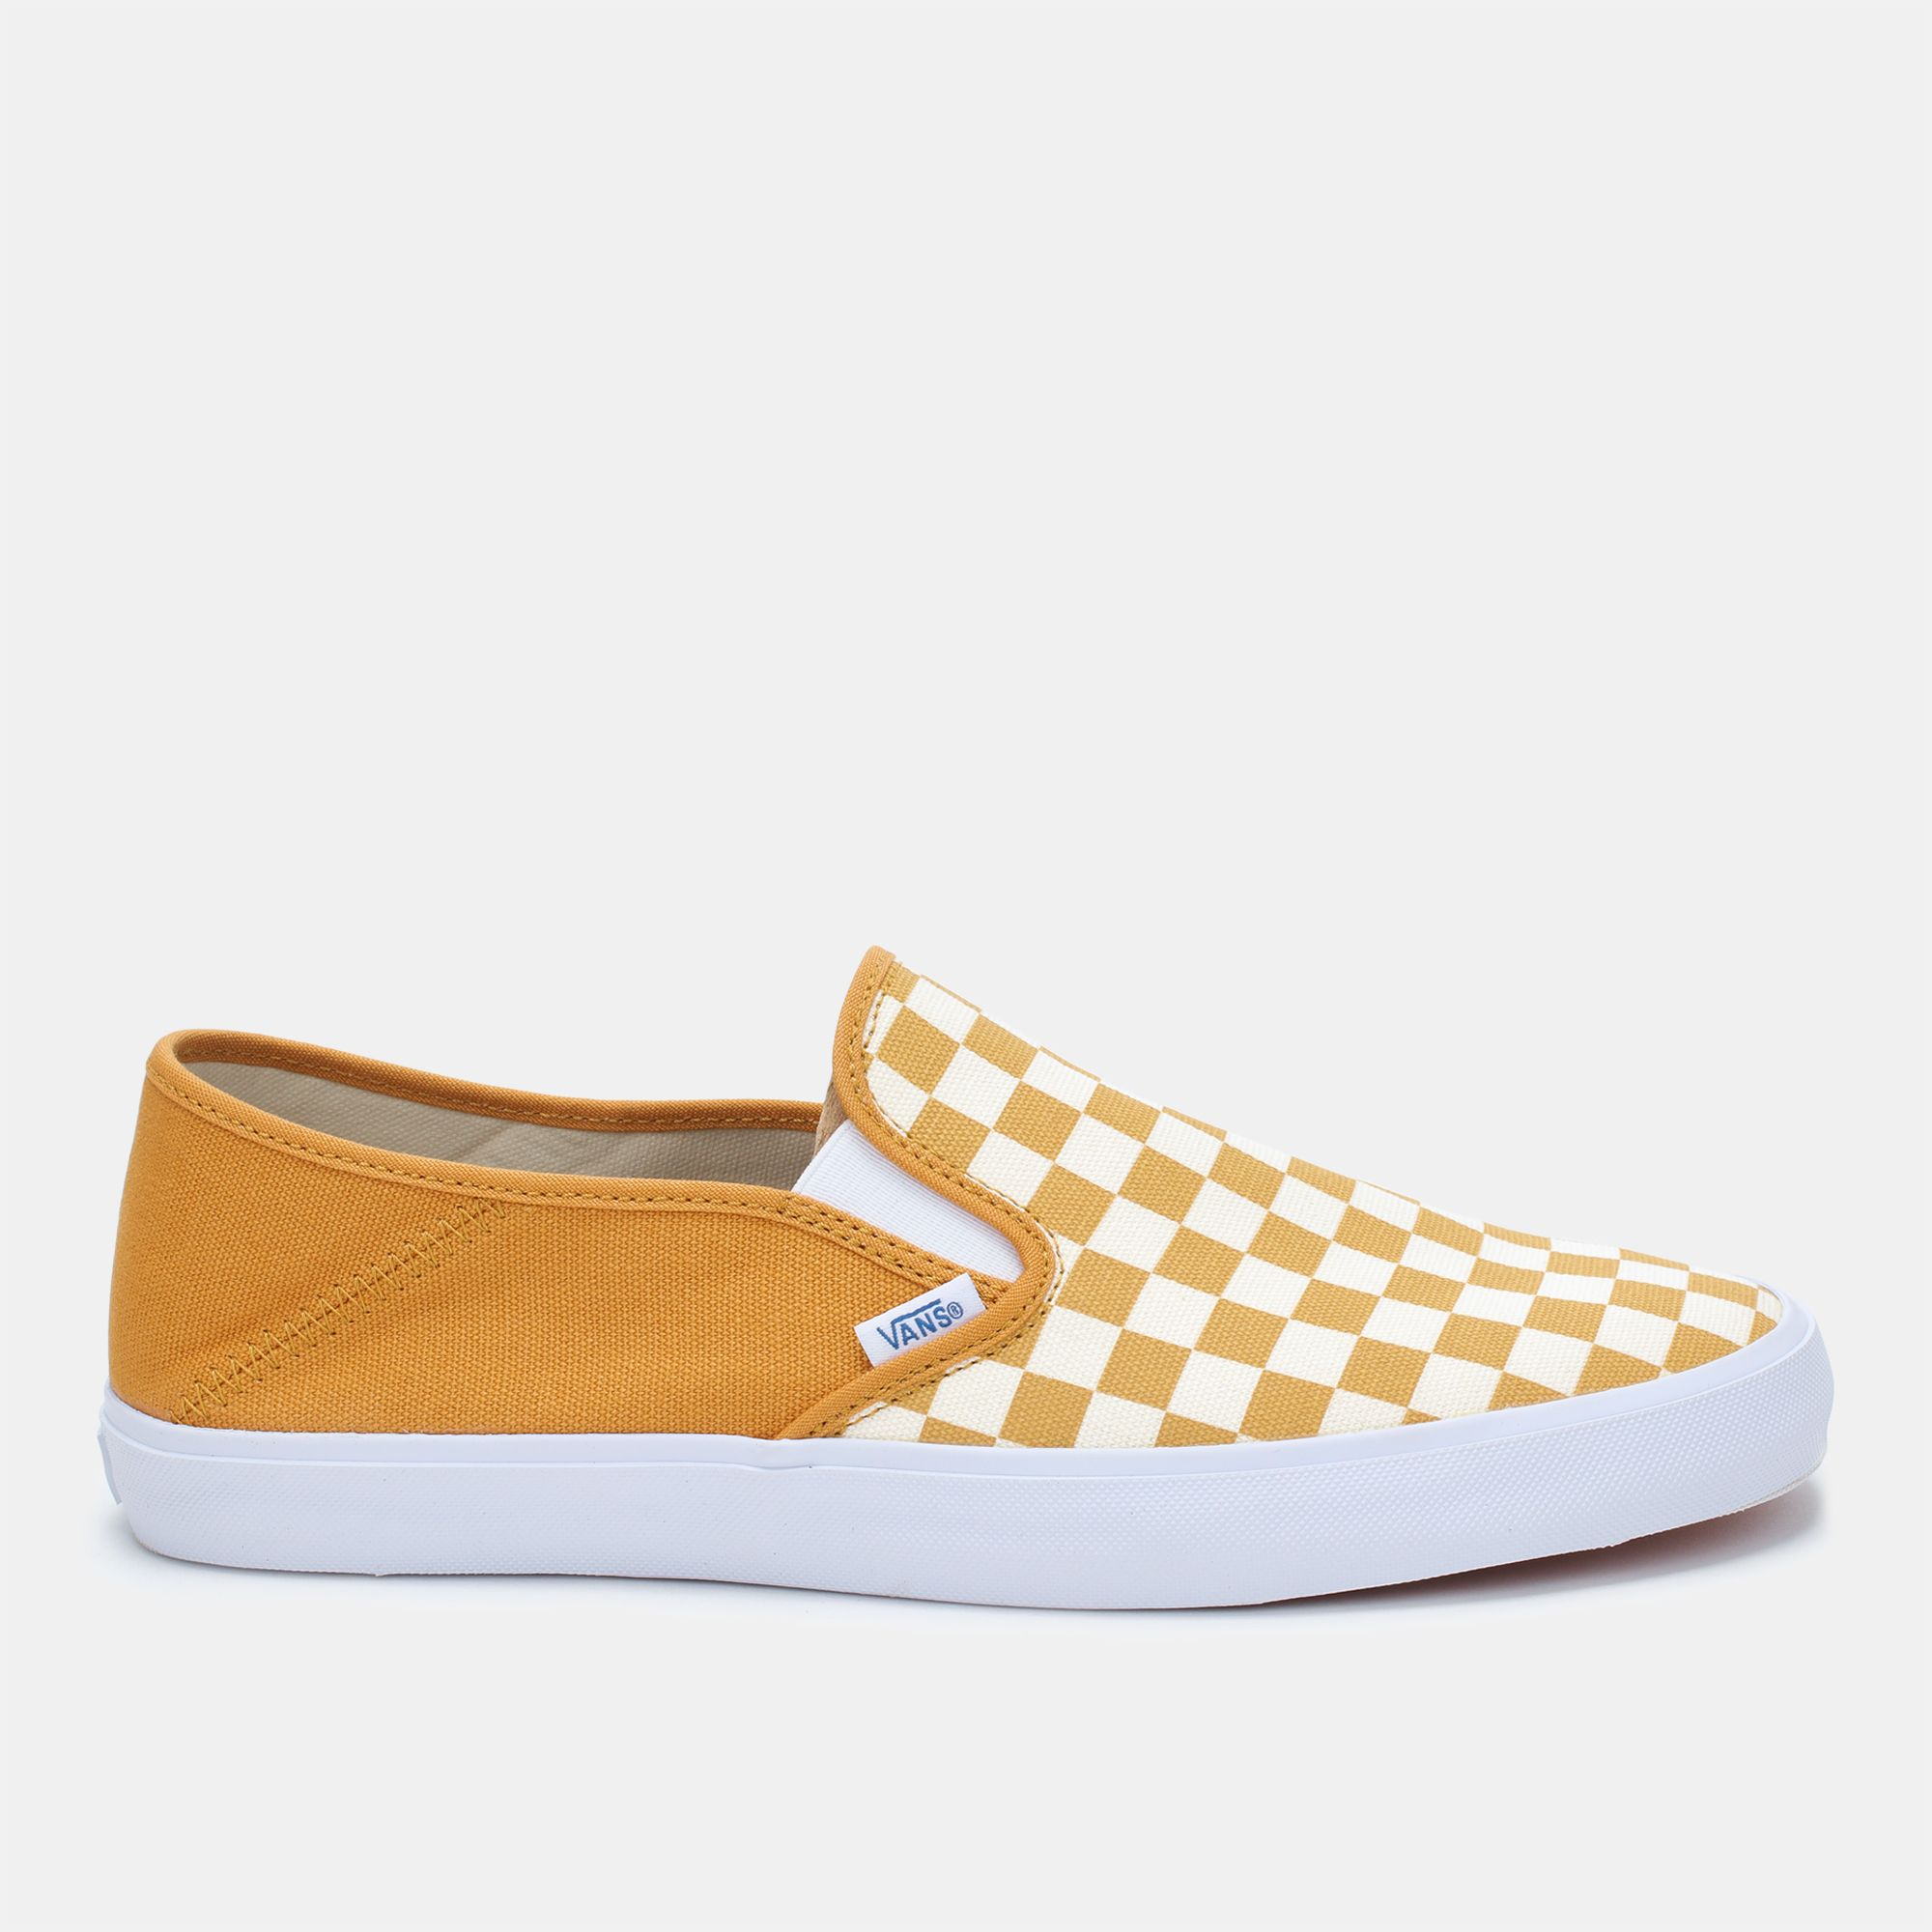 7d7493f296b Shop Yellow Vans Checkerboard Slip-On SF Shoe for Mens by Vans